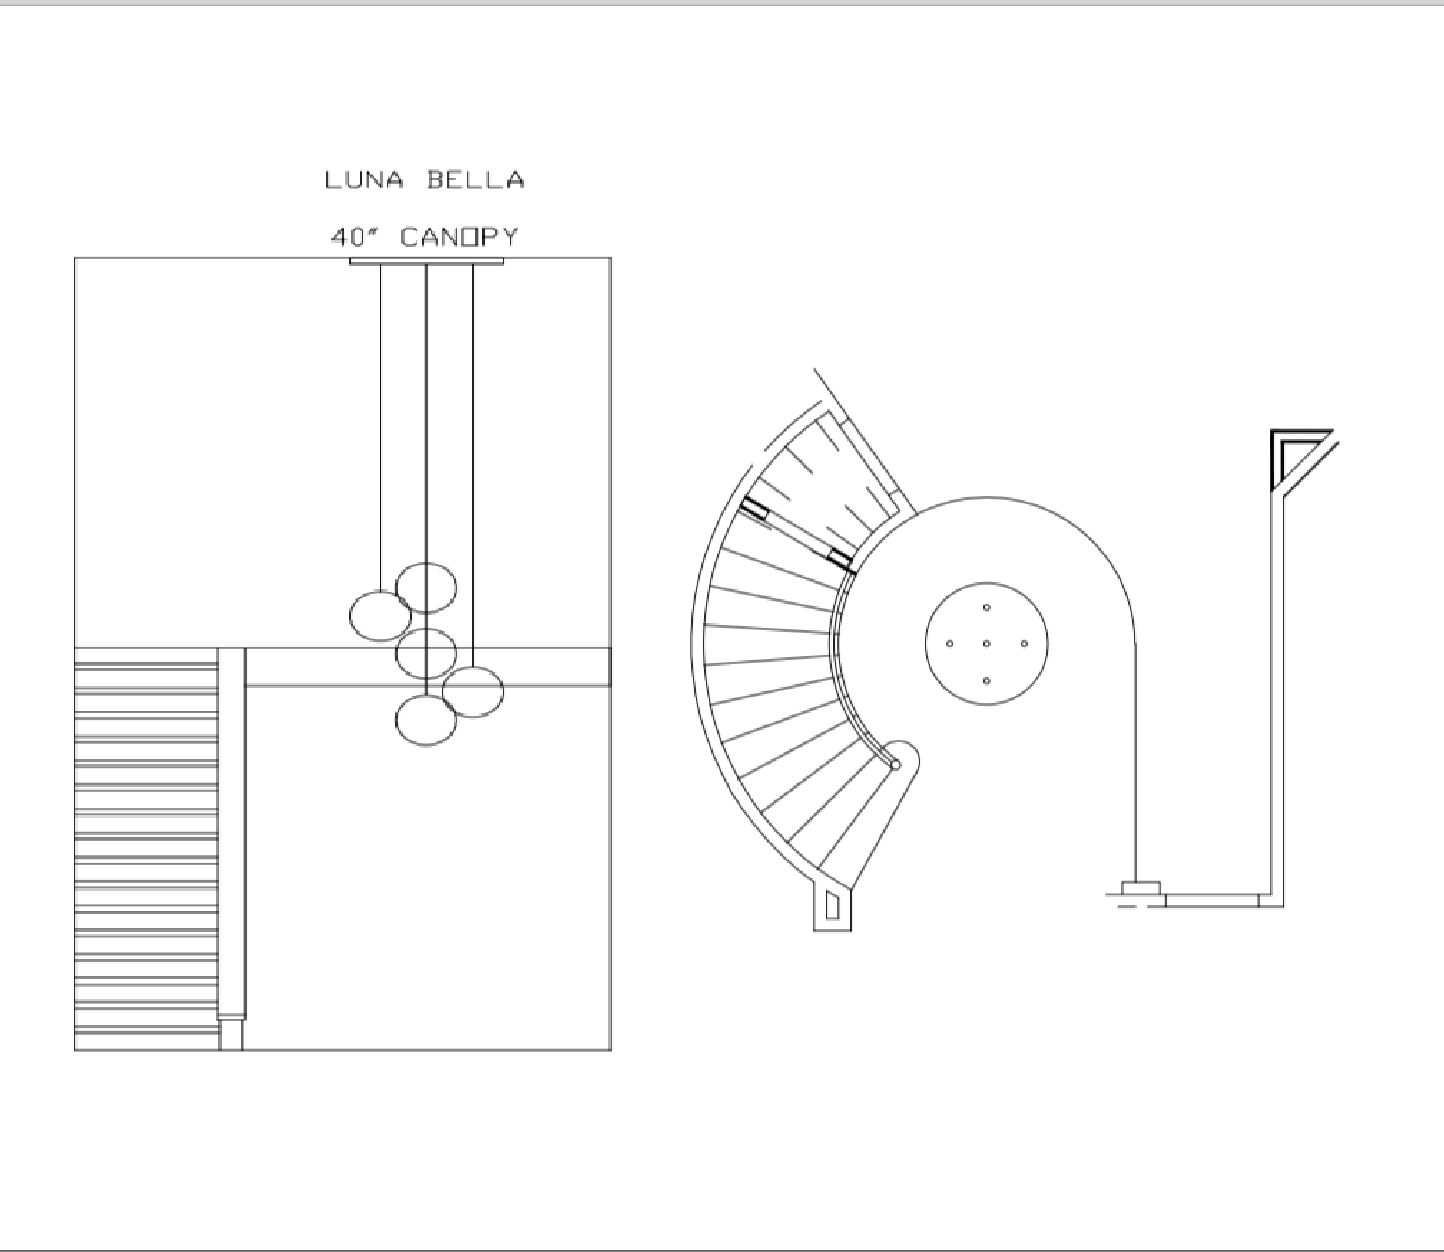 hight resolution of giverny mesh lunabella com chandelier canopy diagram